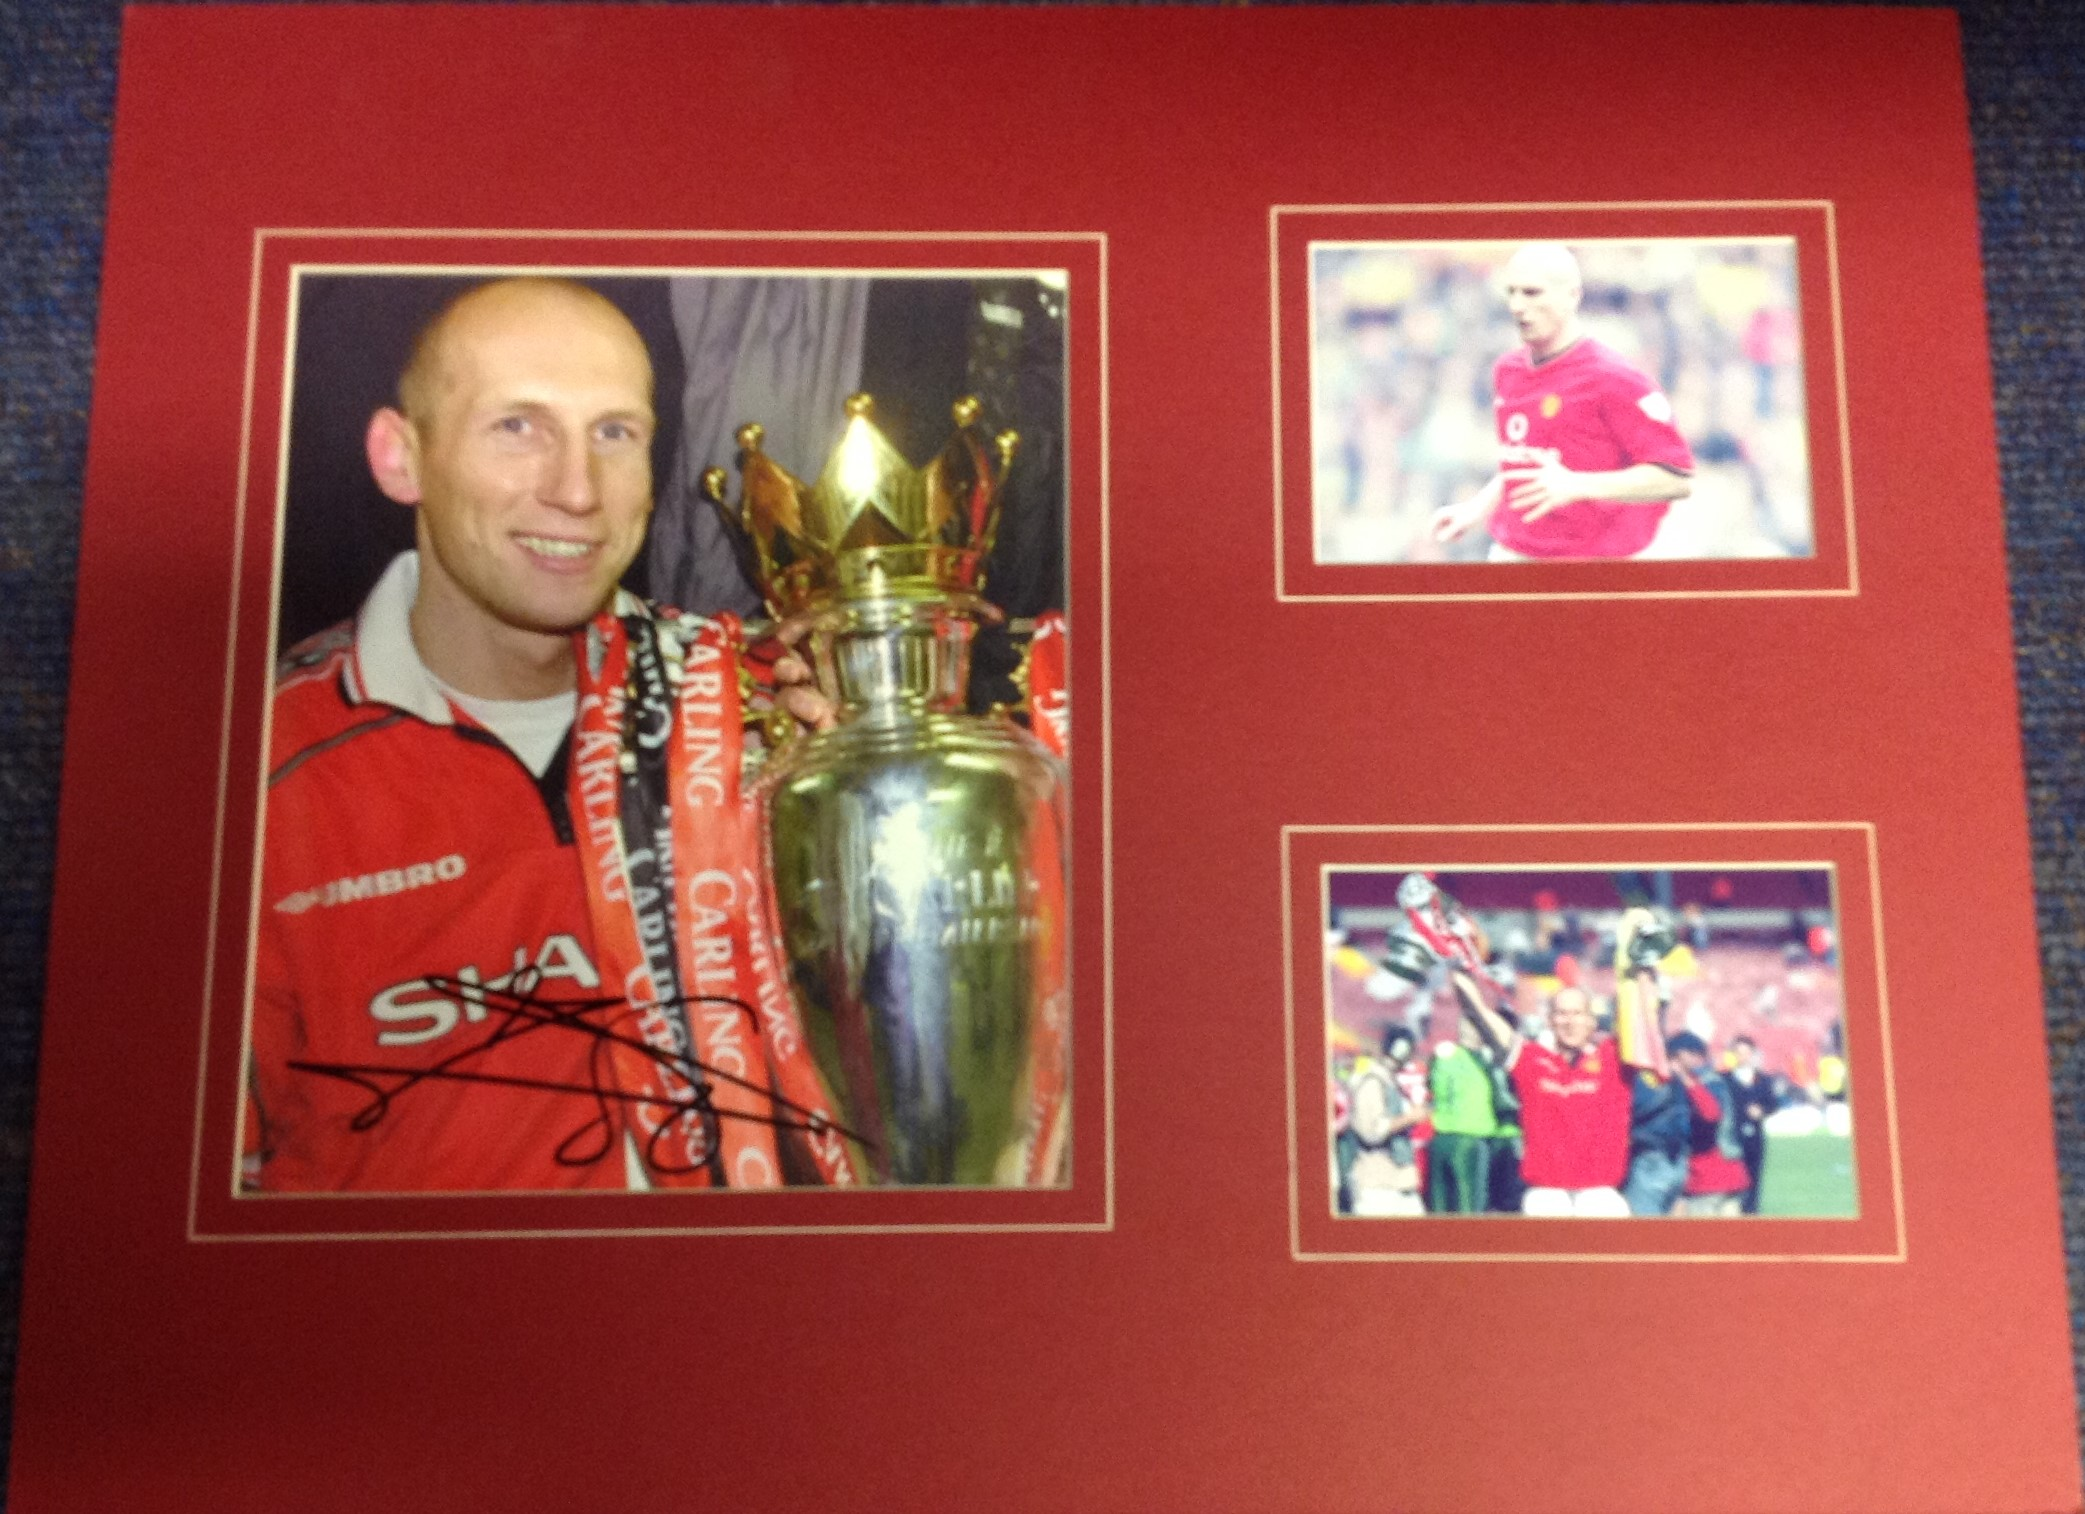 Lot 51 - Football Jaap Stam 16x20 mounted signature piece pictured during his playing days at Manchester